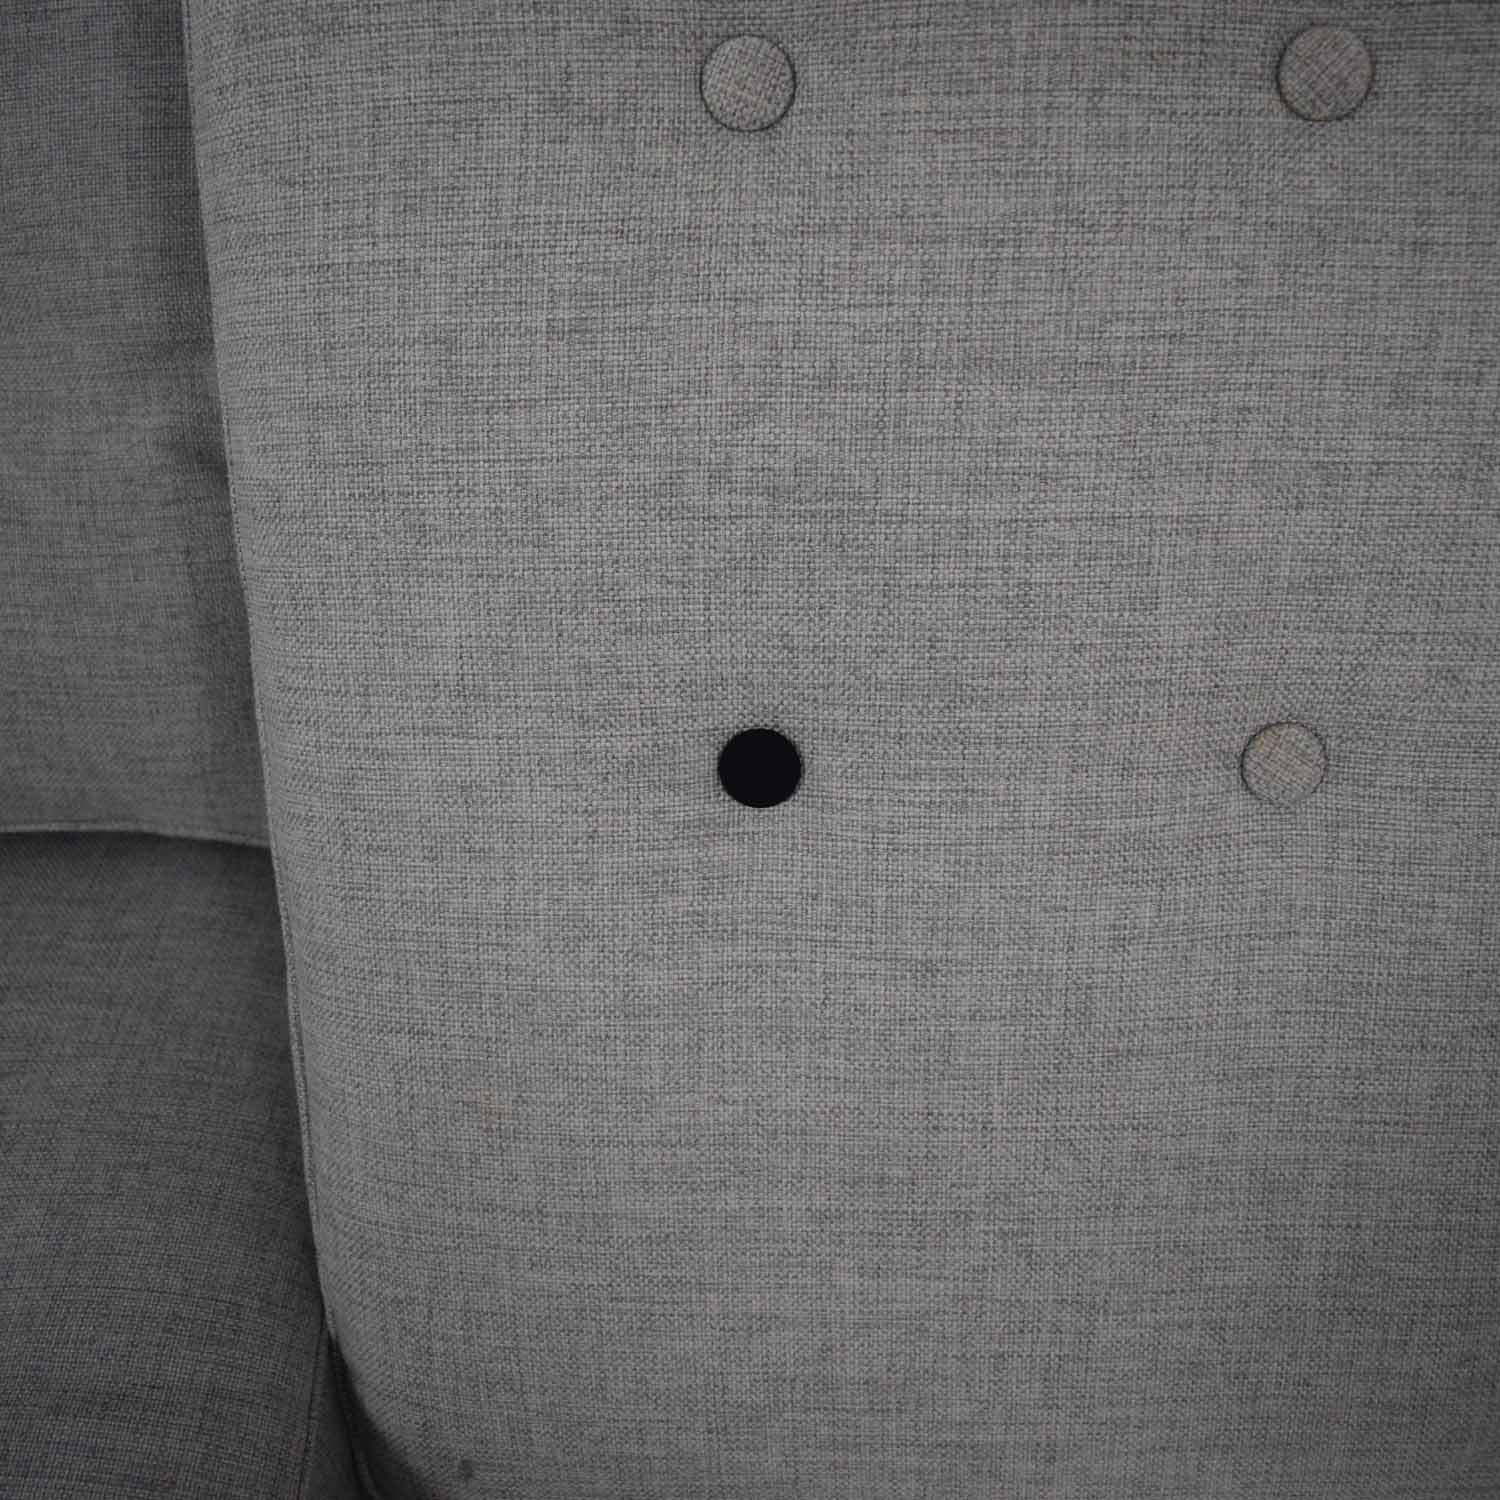 buy West Elm West Elm Peggy Feather Gray Heathered Crosshatch Tufted Sofa online